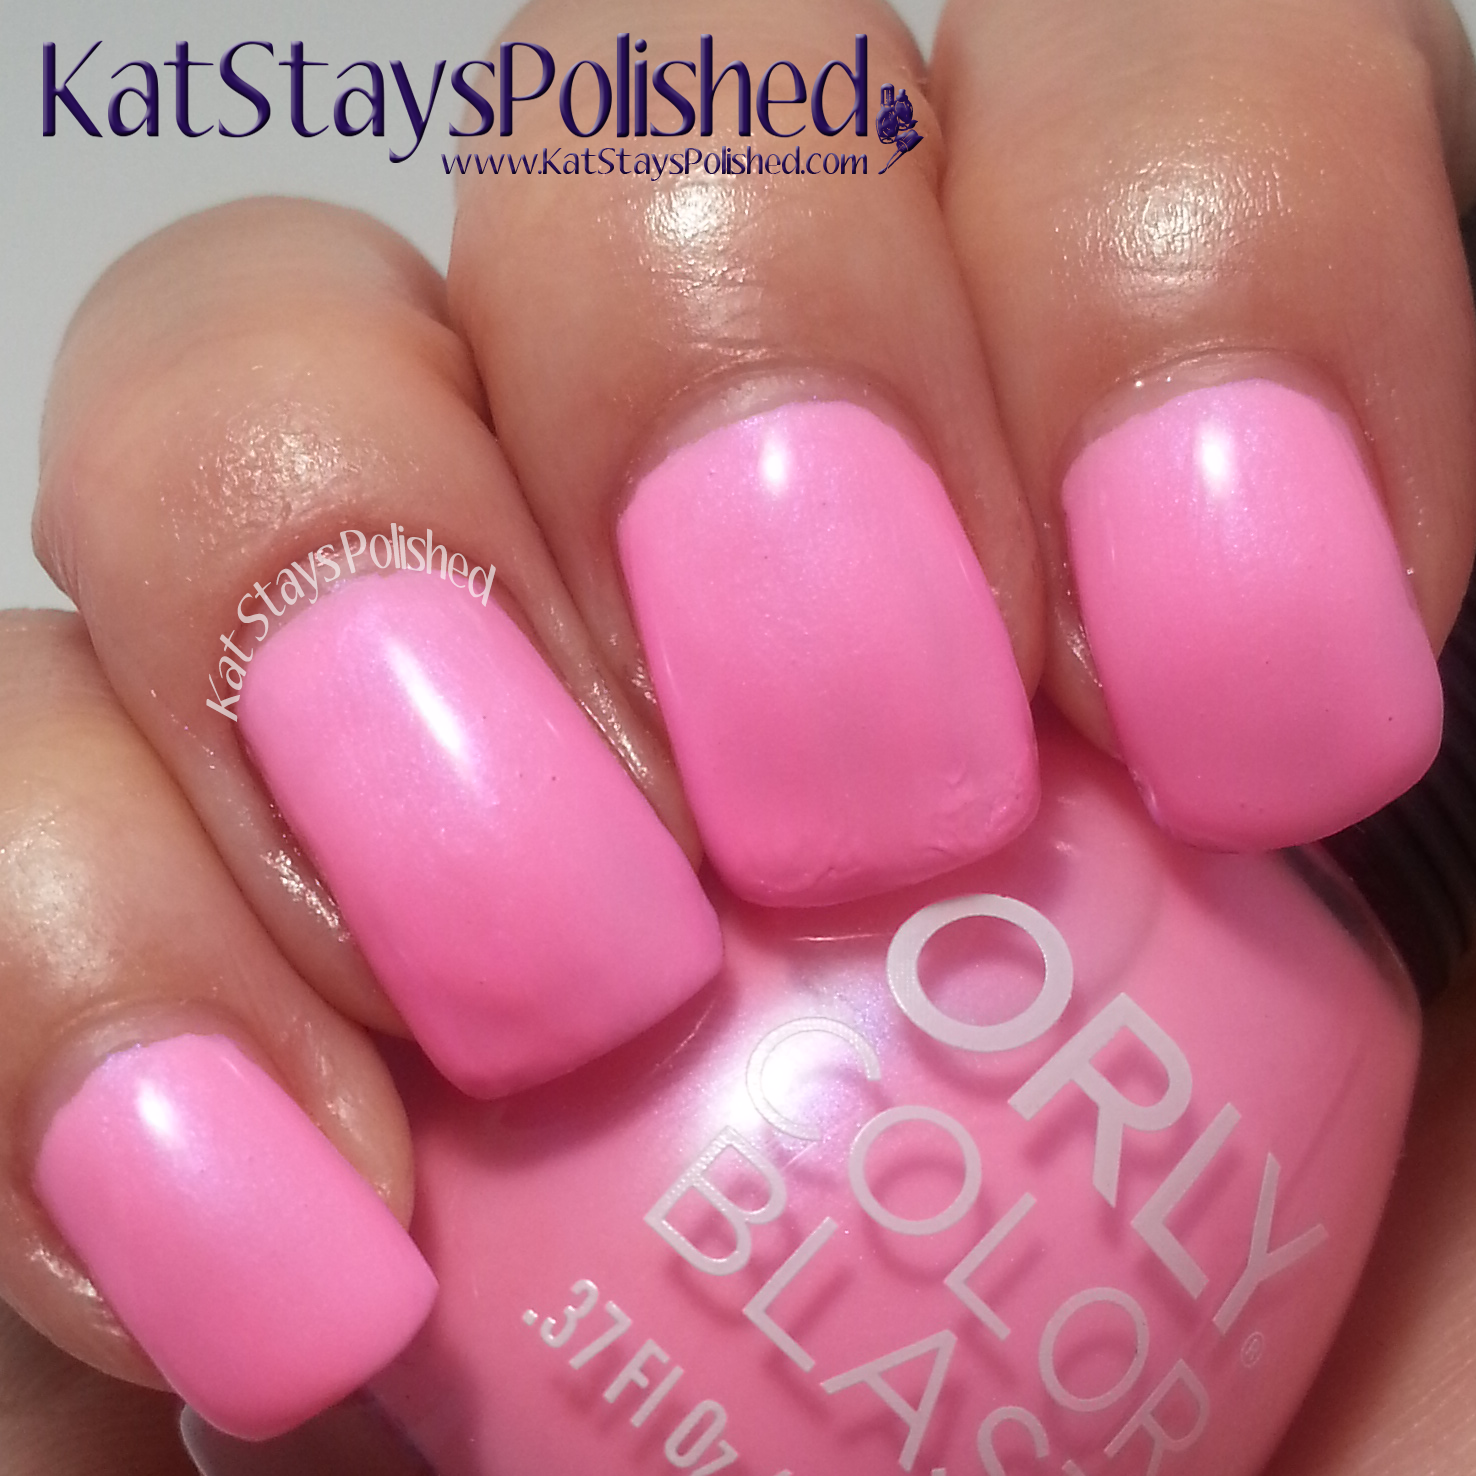 Orly Color Blast - Disney's Frozen Elsa Collection - Winter Blush | Kat Stays Polished